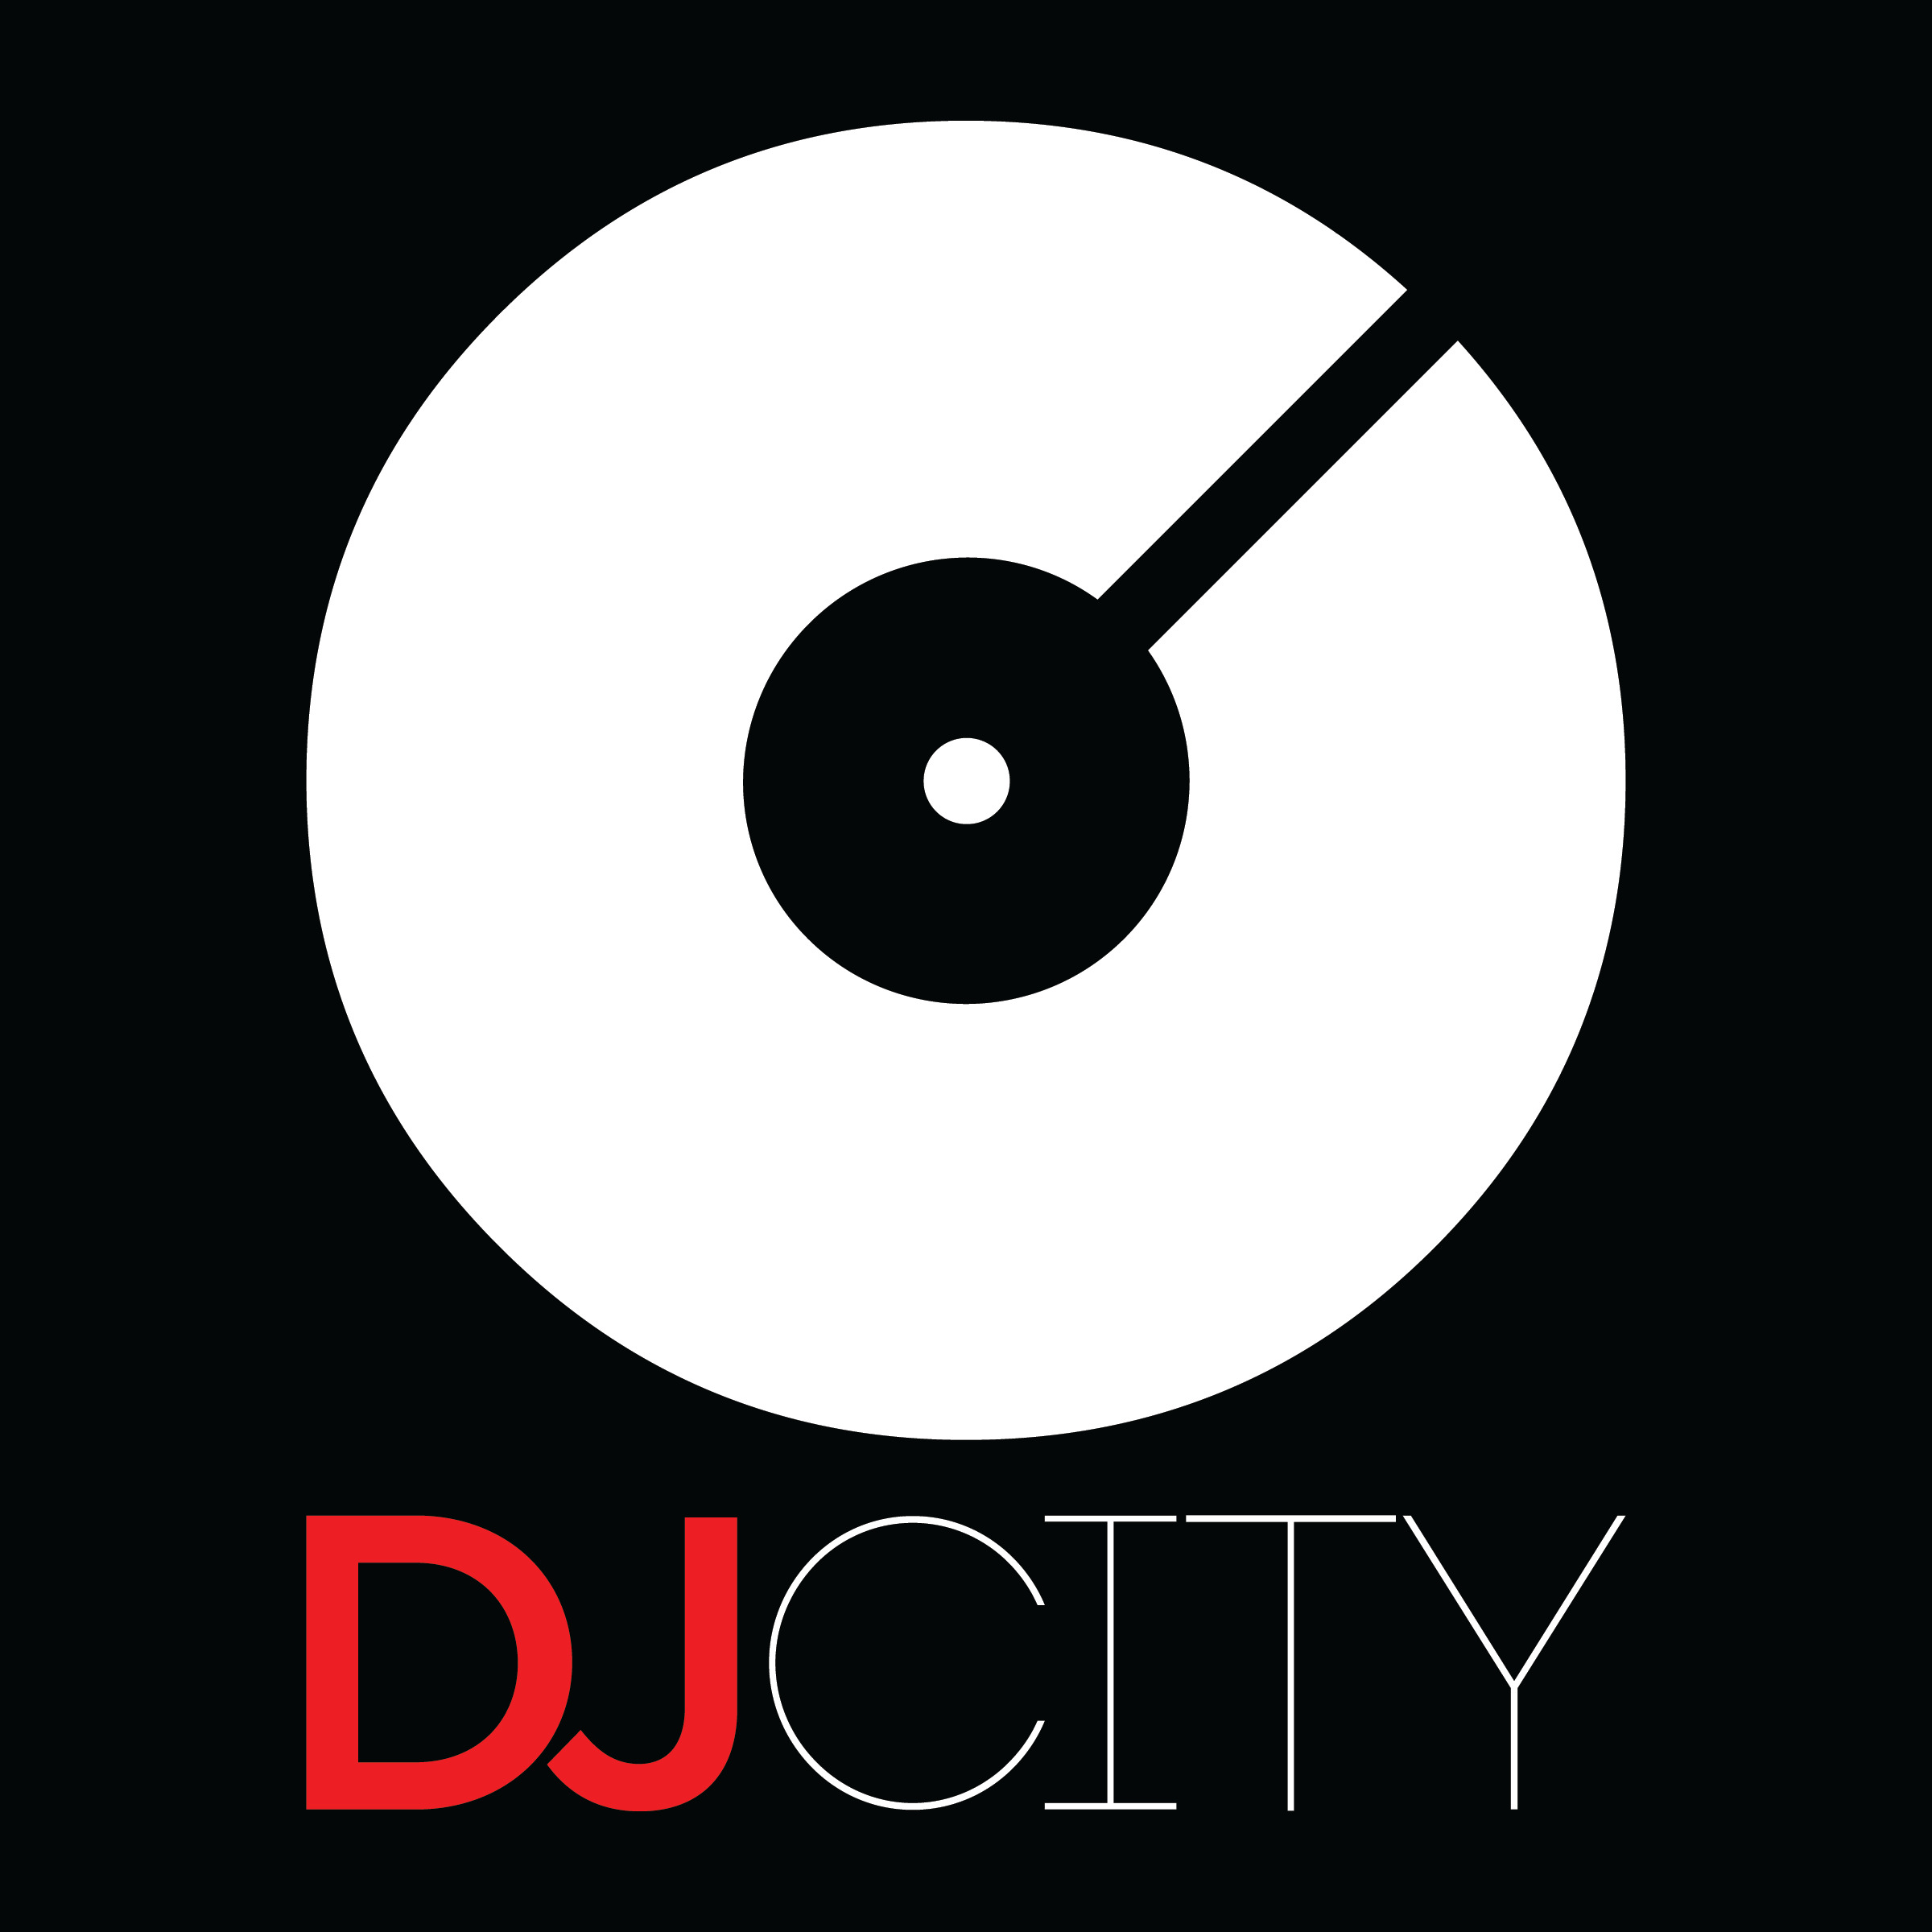 DJcity Podcast on Apple Podcasts